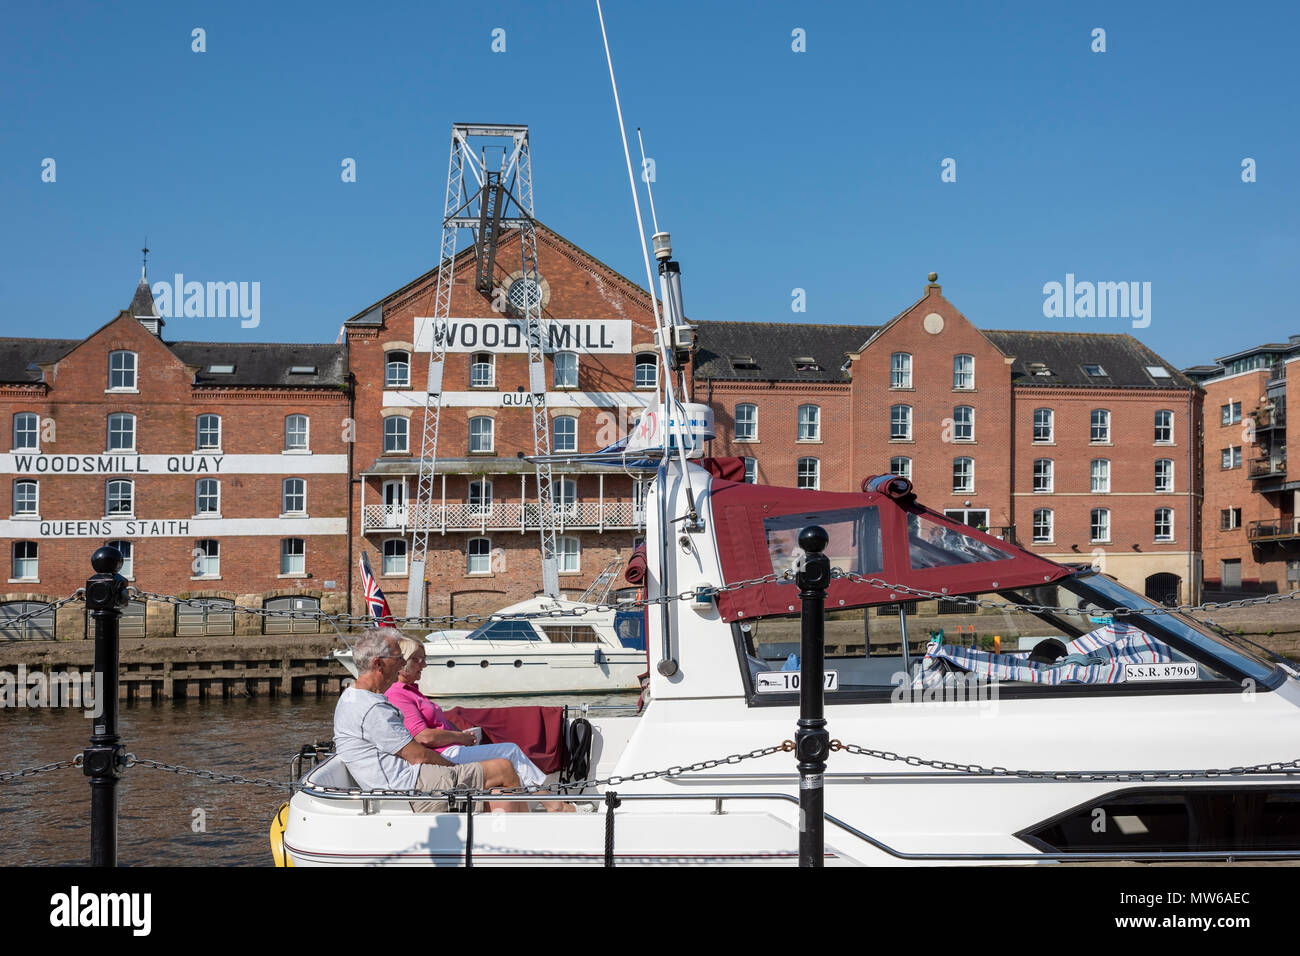 Relaxation on a cruising boat opposite Woods Mill, River Ouse, York, UK - Stock Image